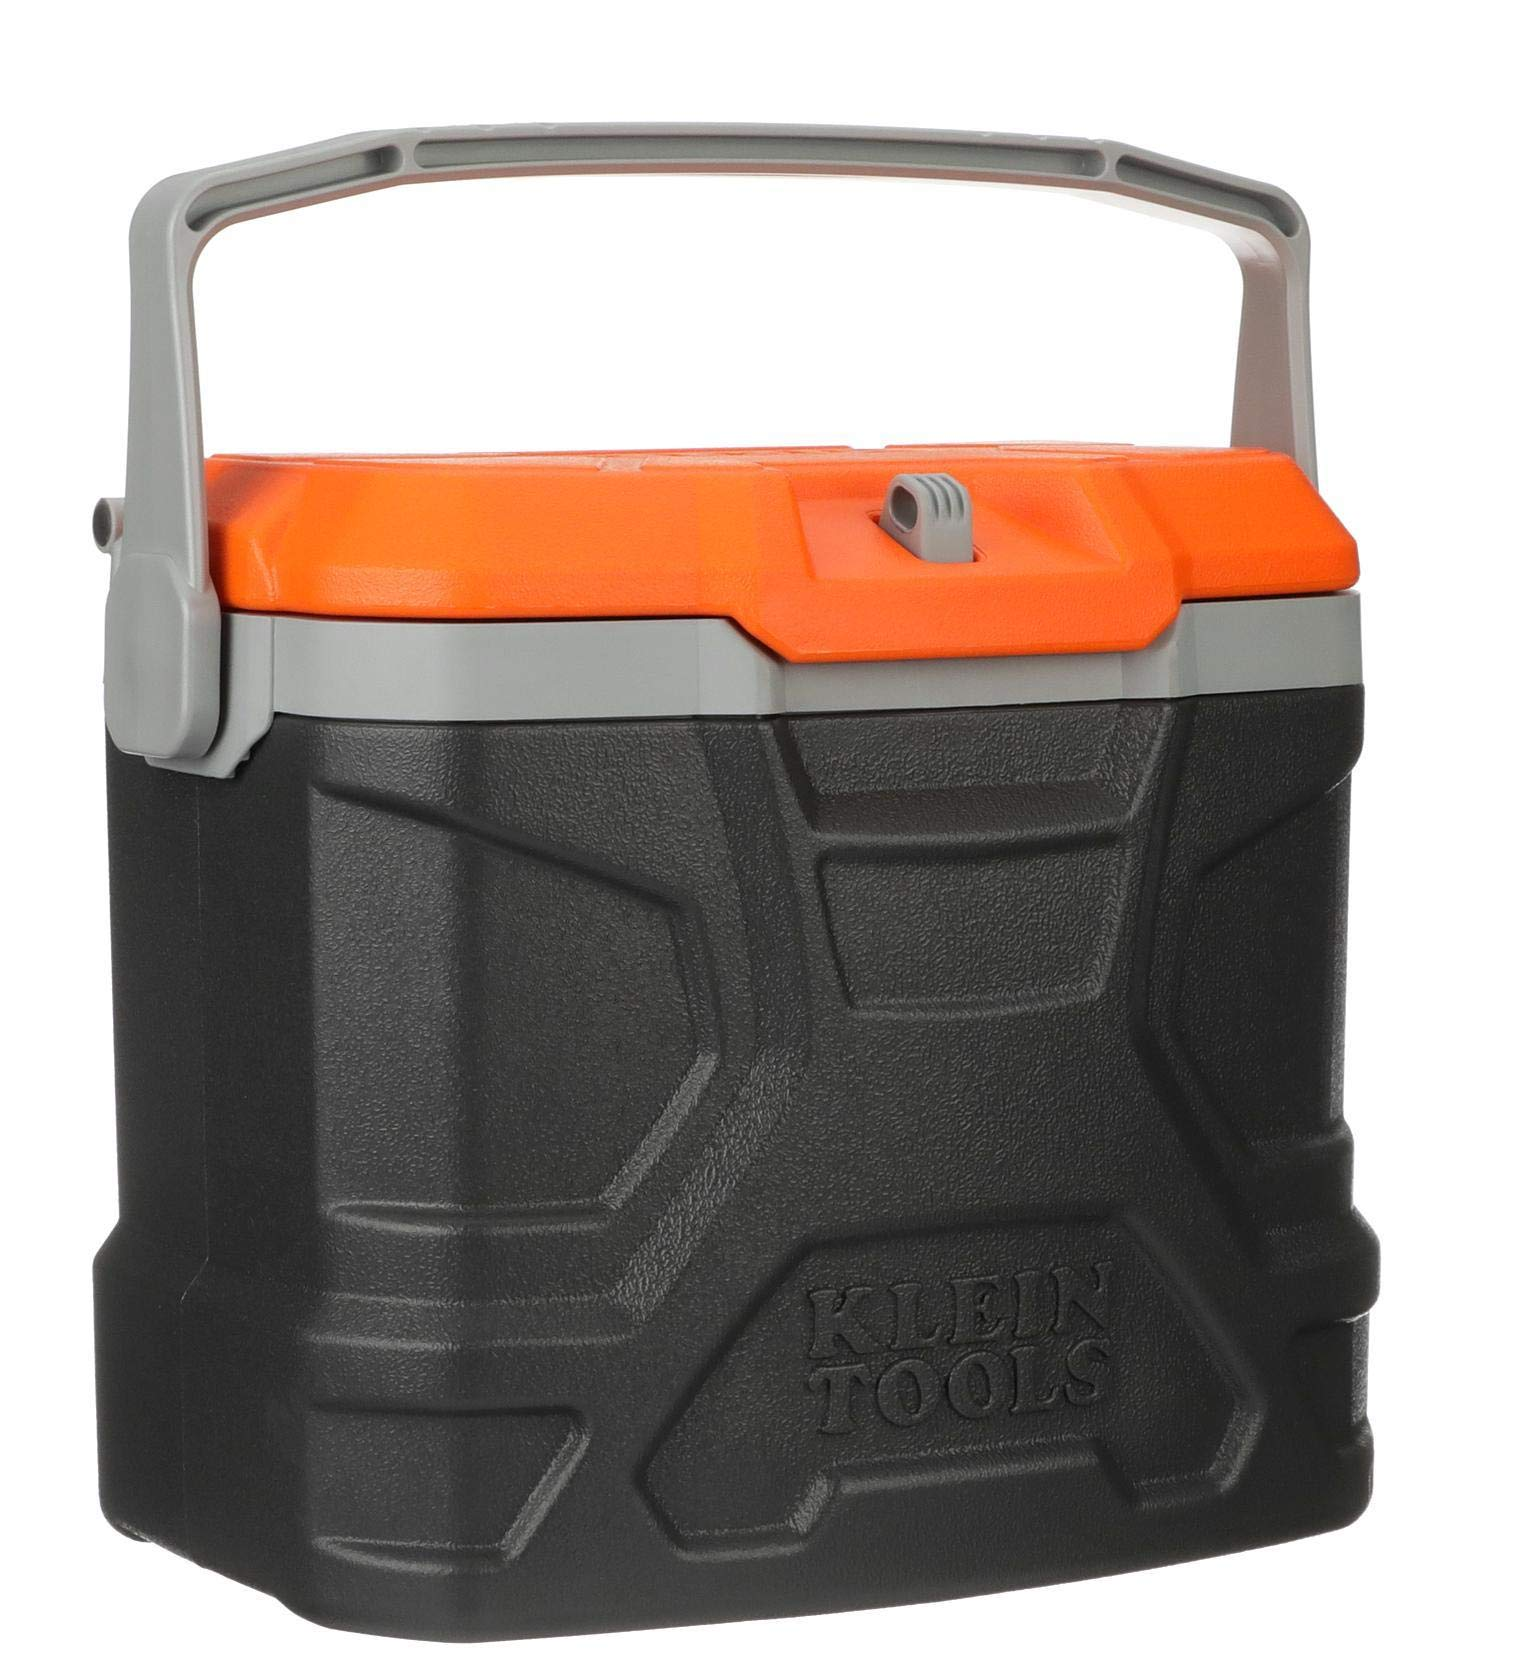 Lunch Box, Insulated Cooler Tote Has 9-Quart Capacity and Seats up to 300 Pounds Klein Tools 55625 by Klein Tools (Image #11)